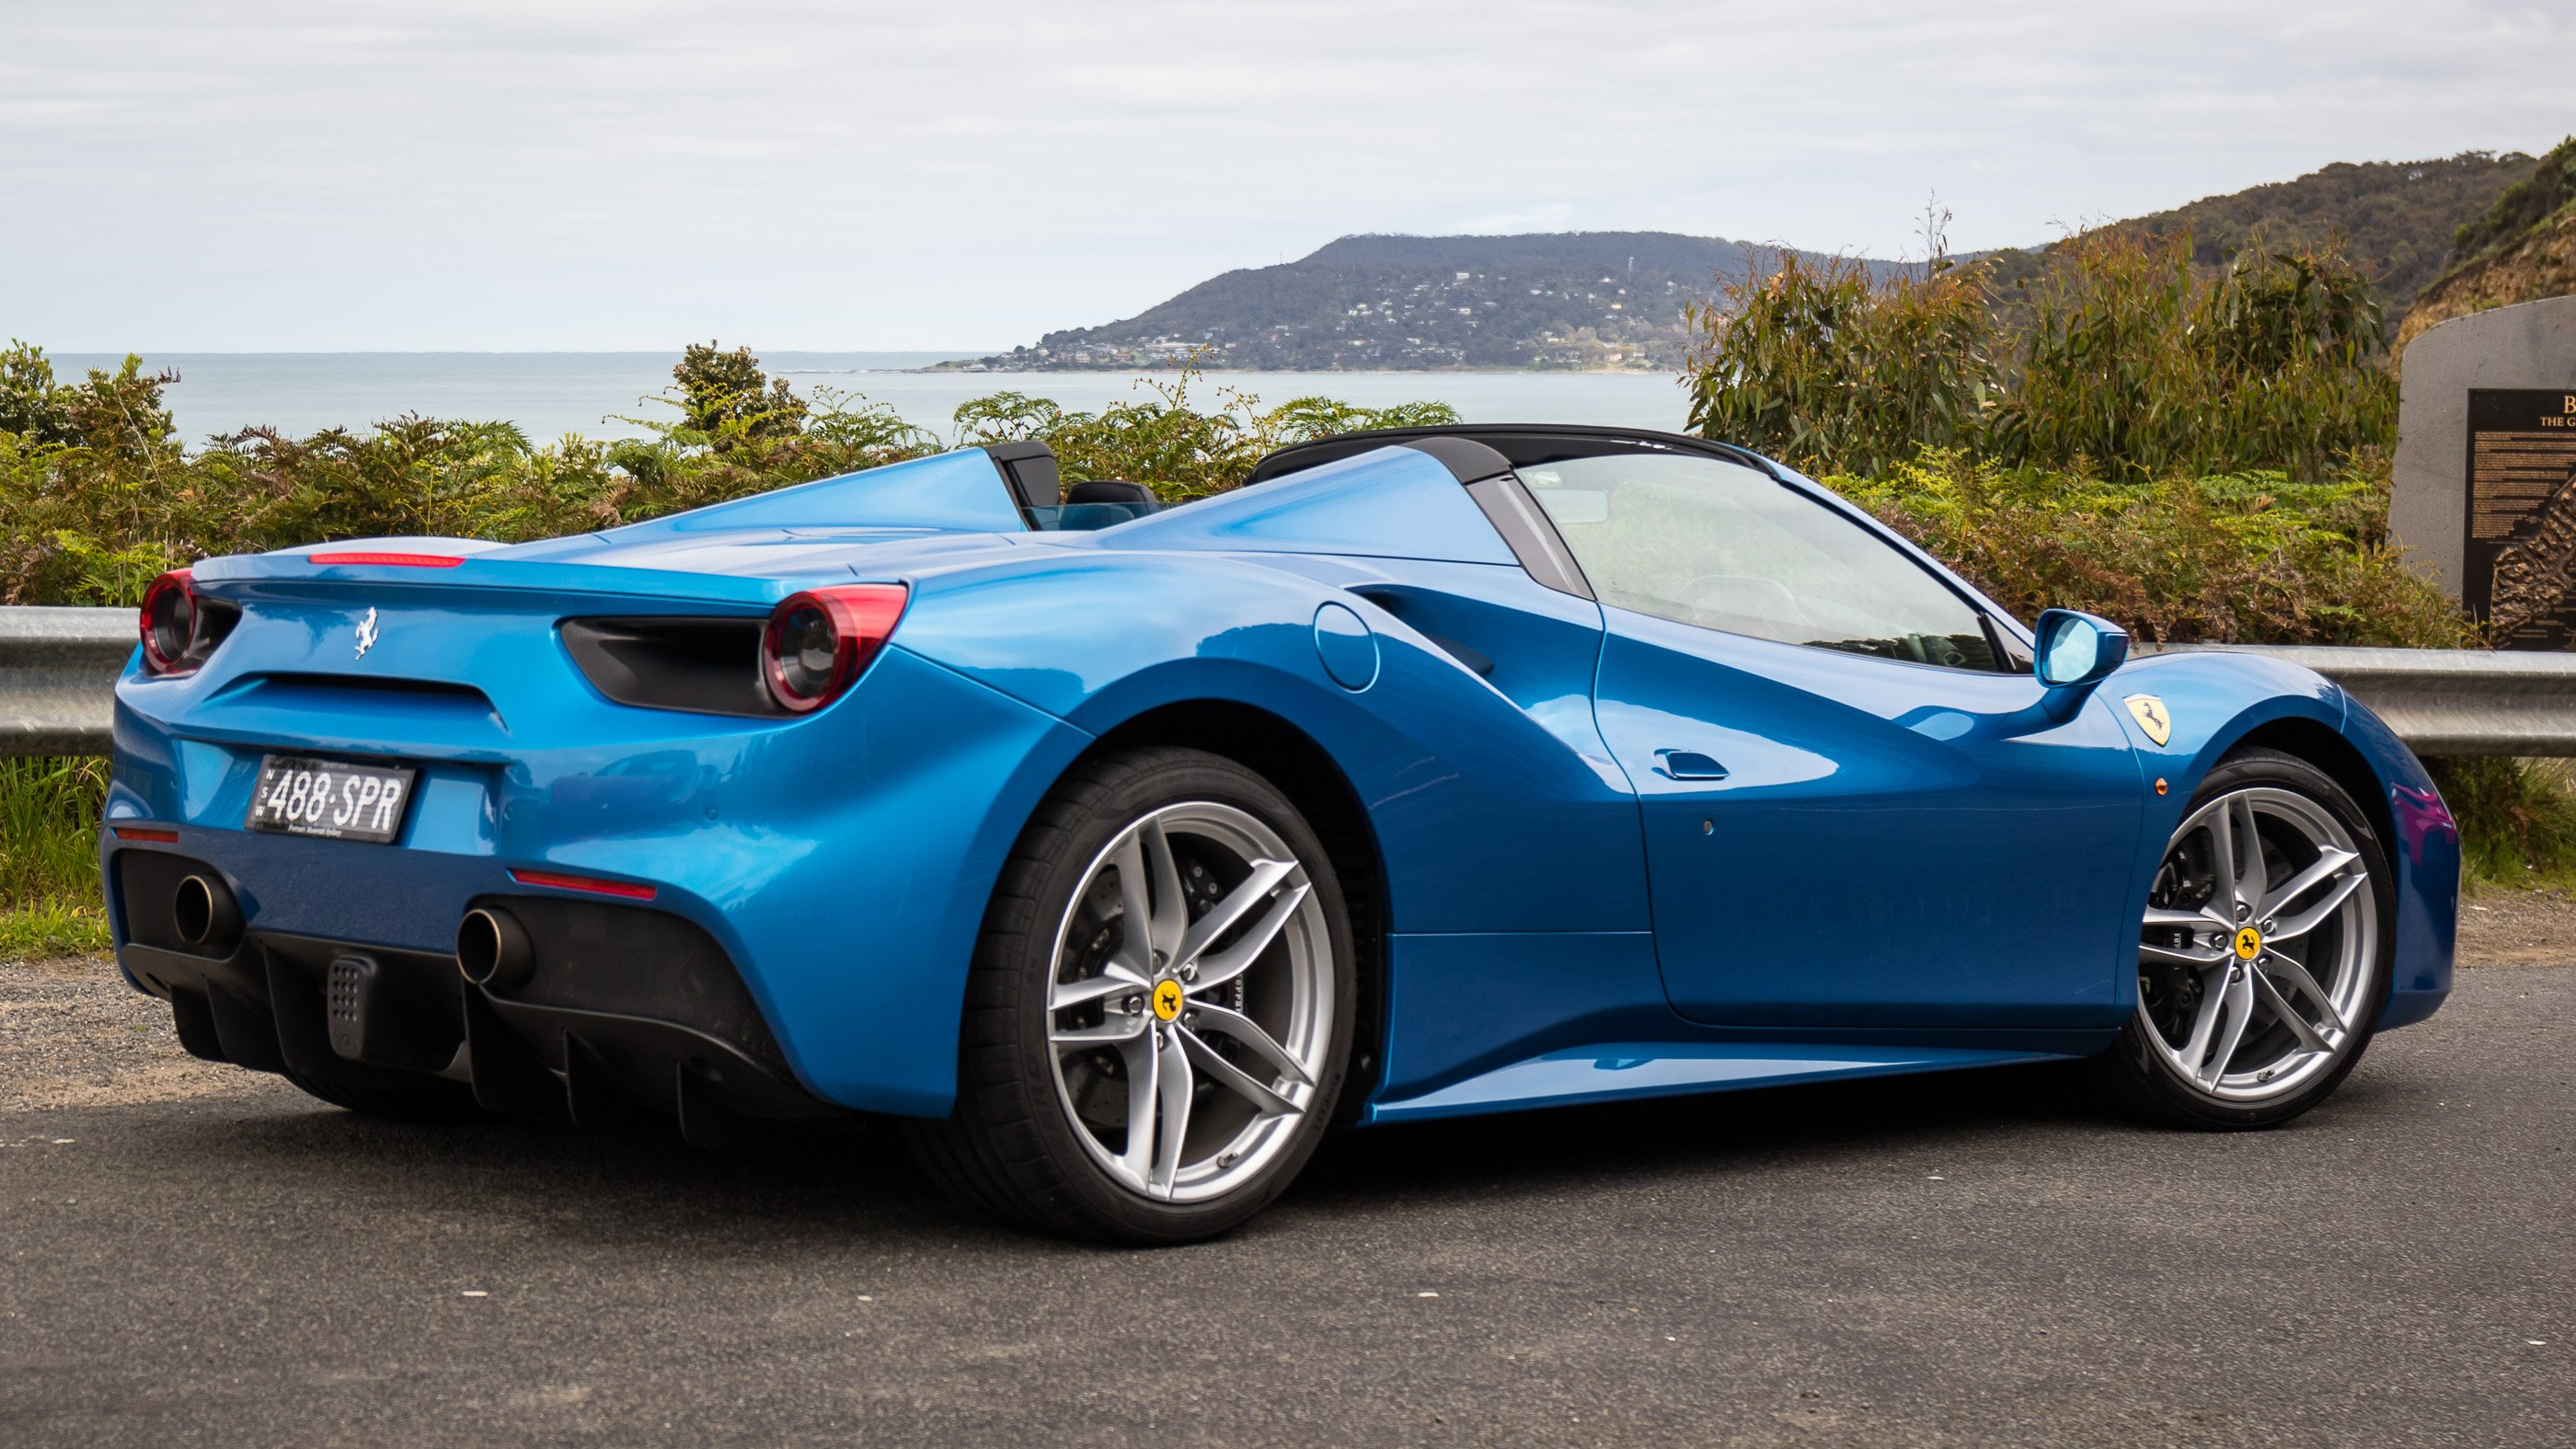 2016 ferrari 488 spider review photos caradvice. Black Bedroom Furniture Sets. Home Design Ideas